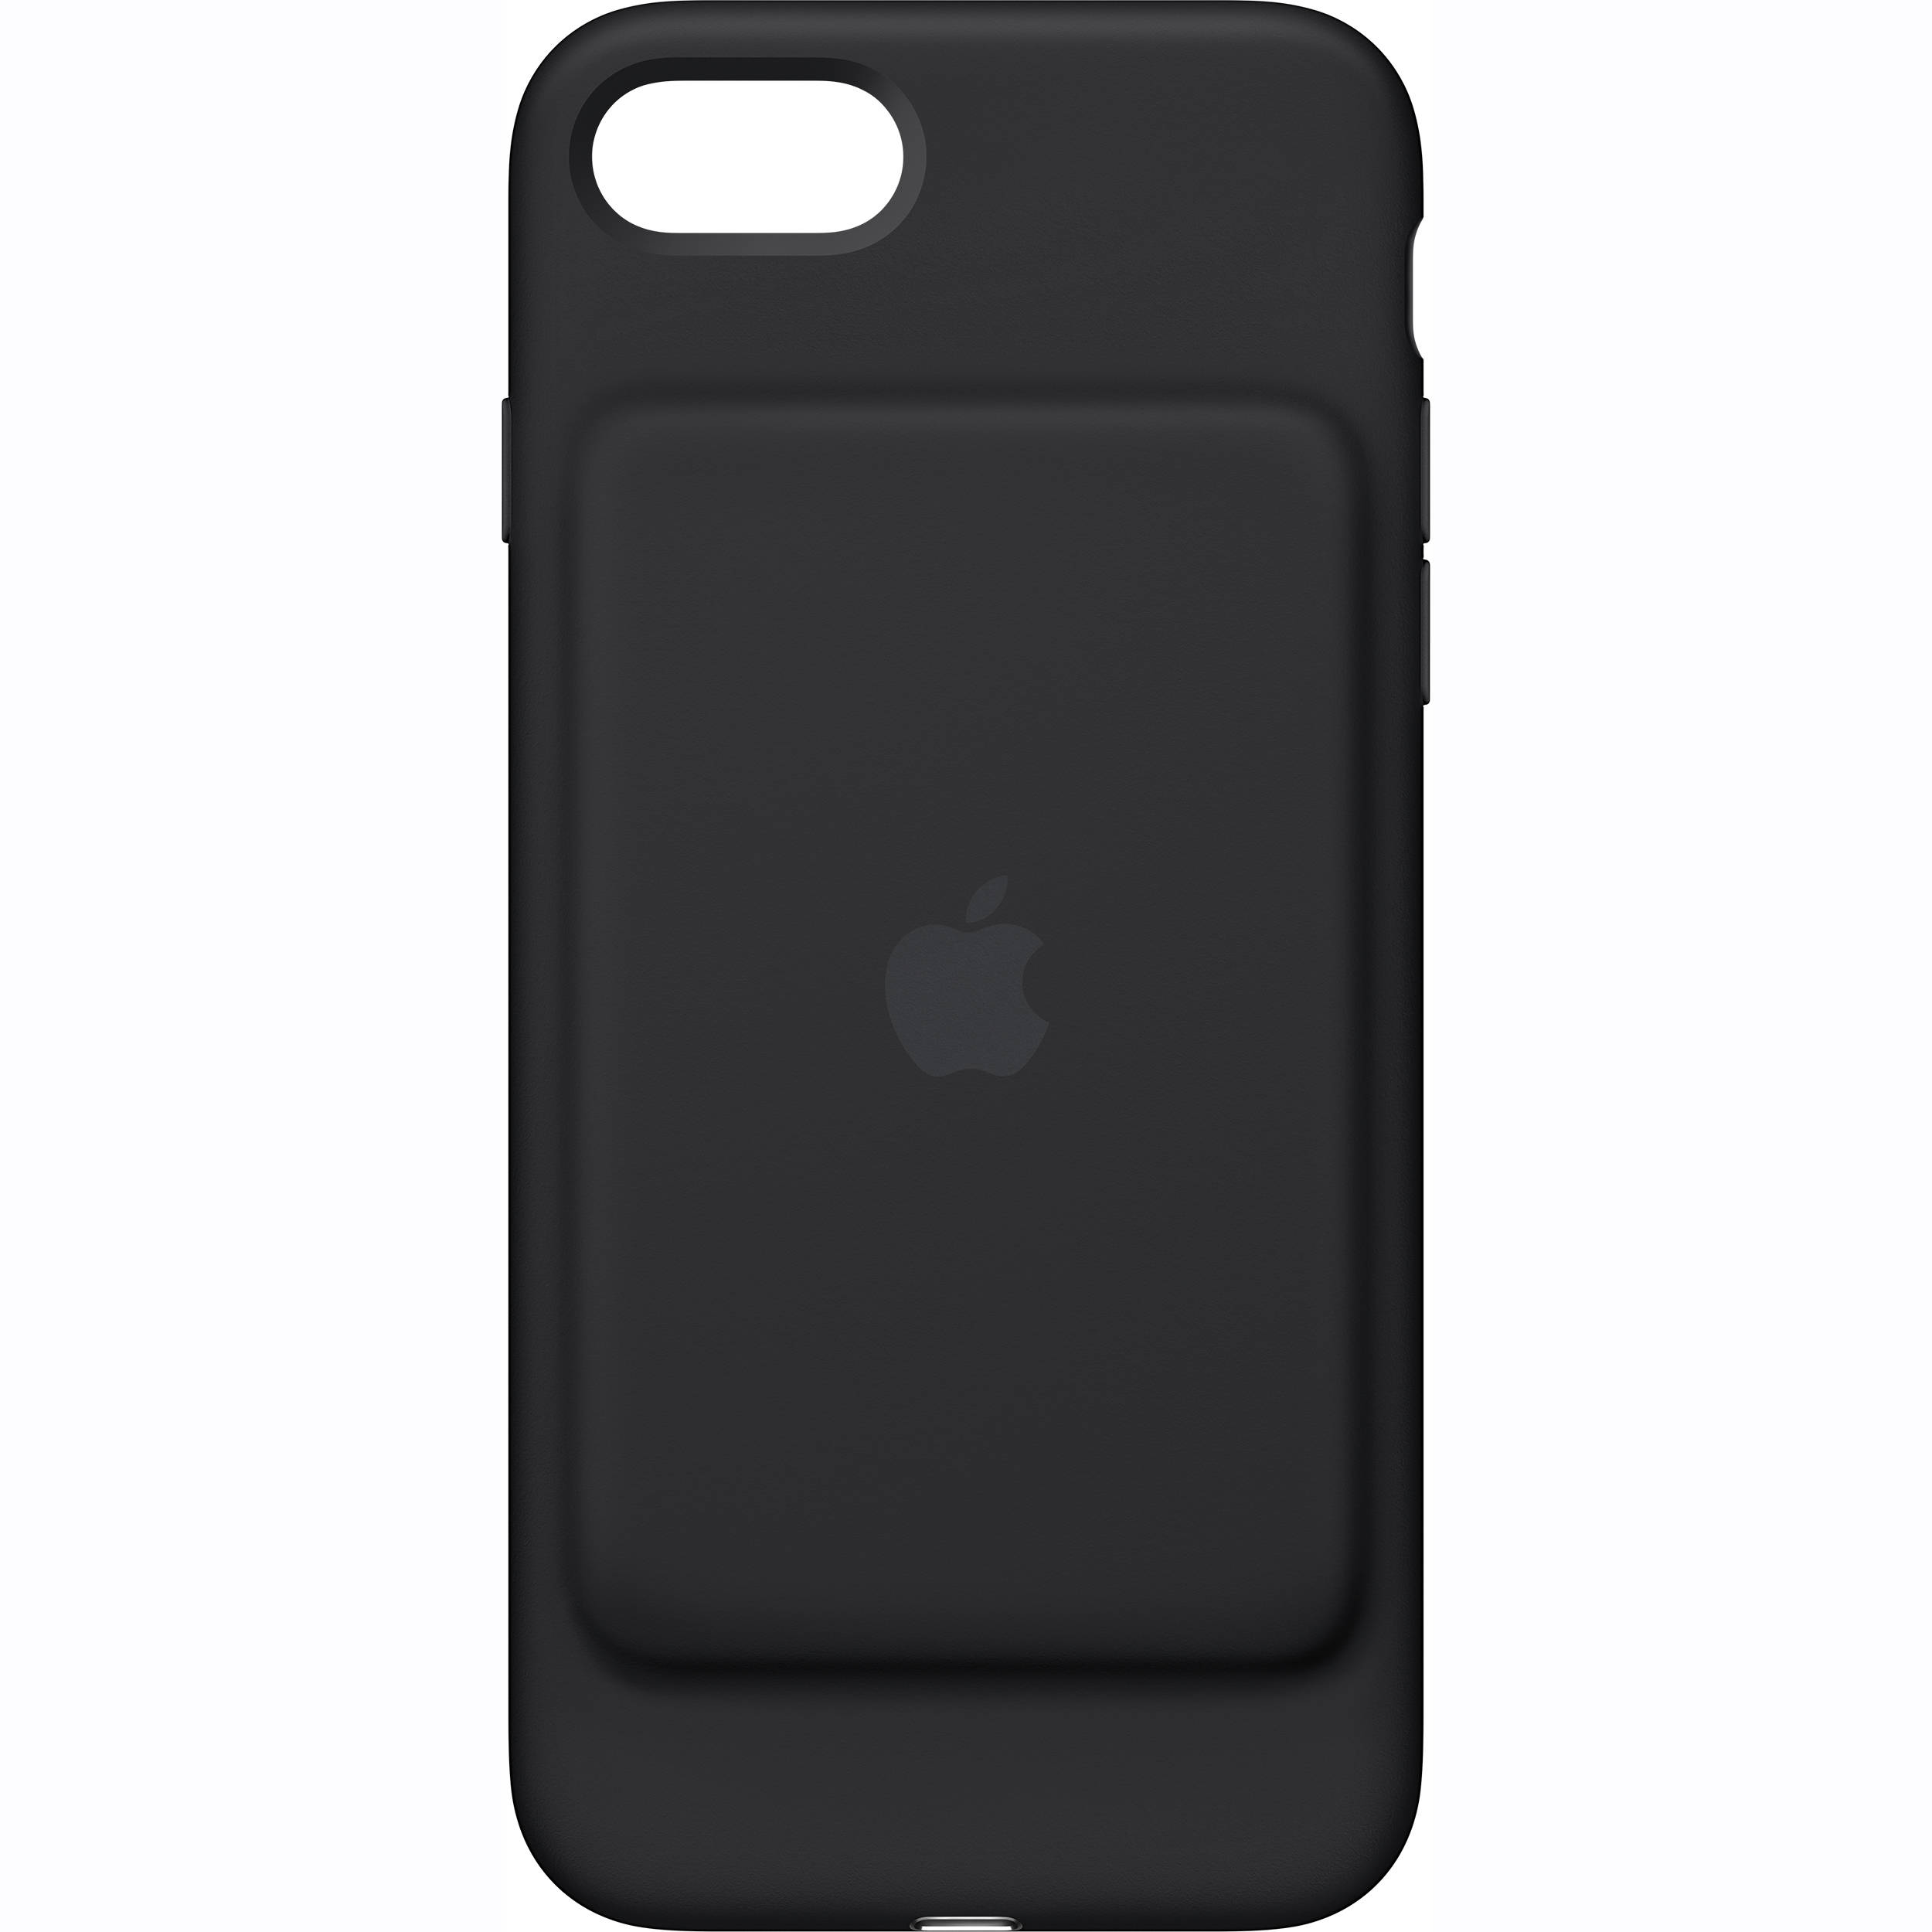 pretty nice 232ef 27c23 Apple iPhone 7 Smart Battery Case (Black)